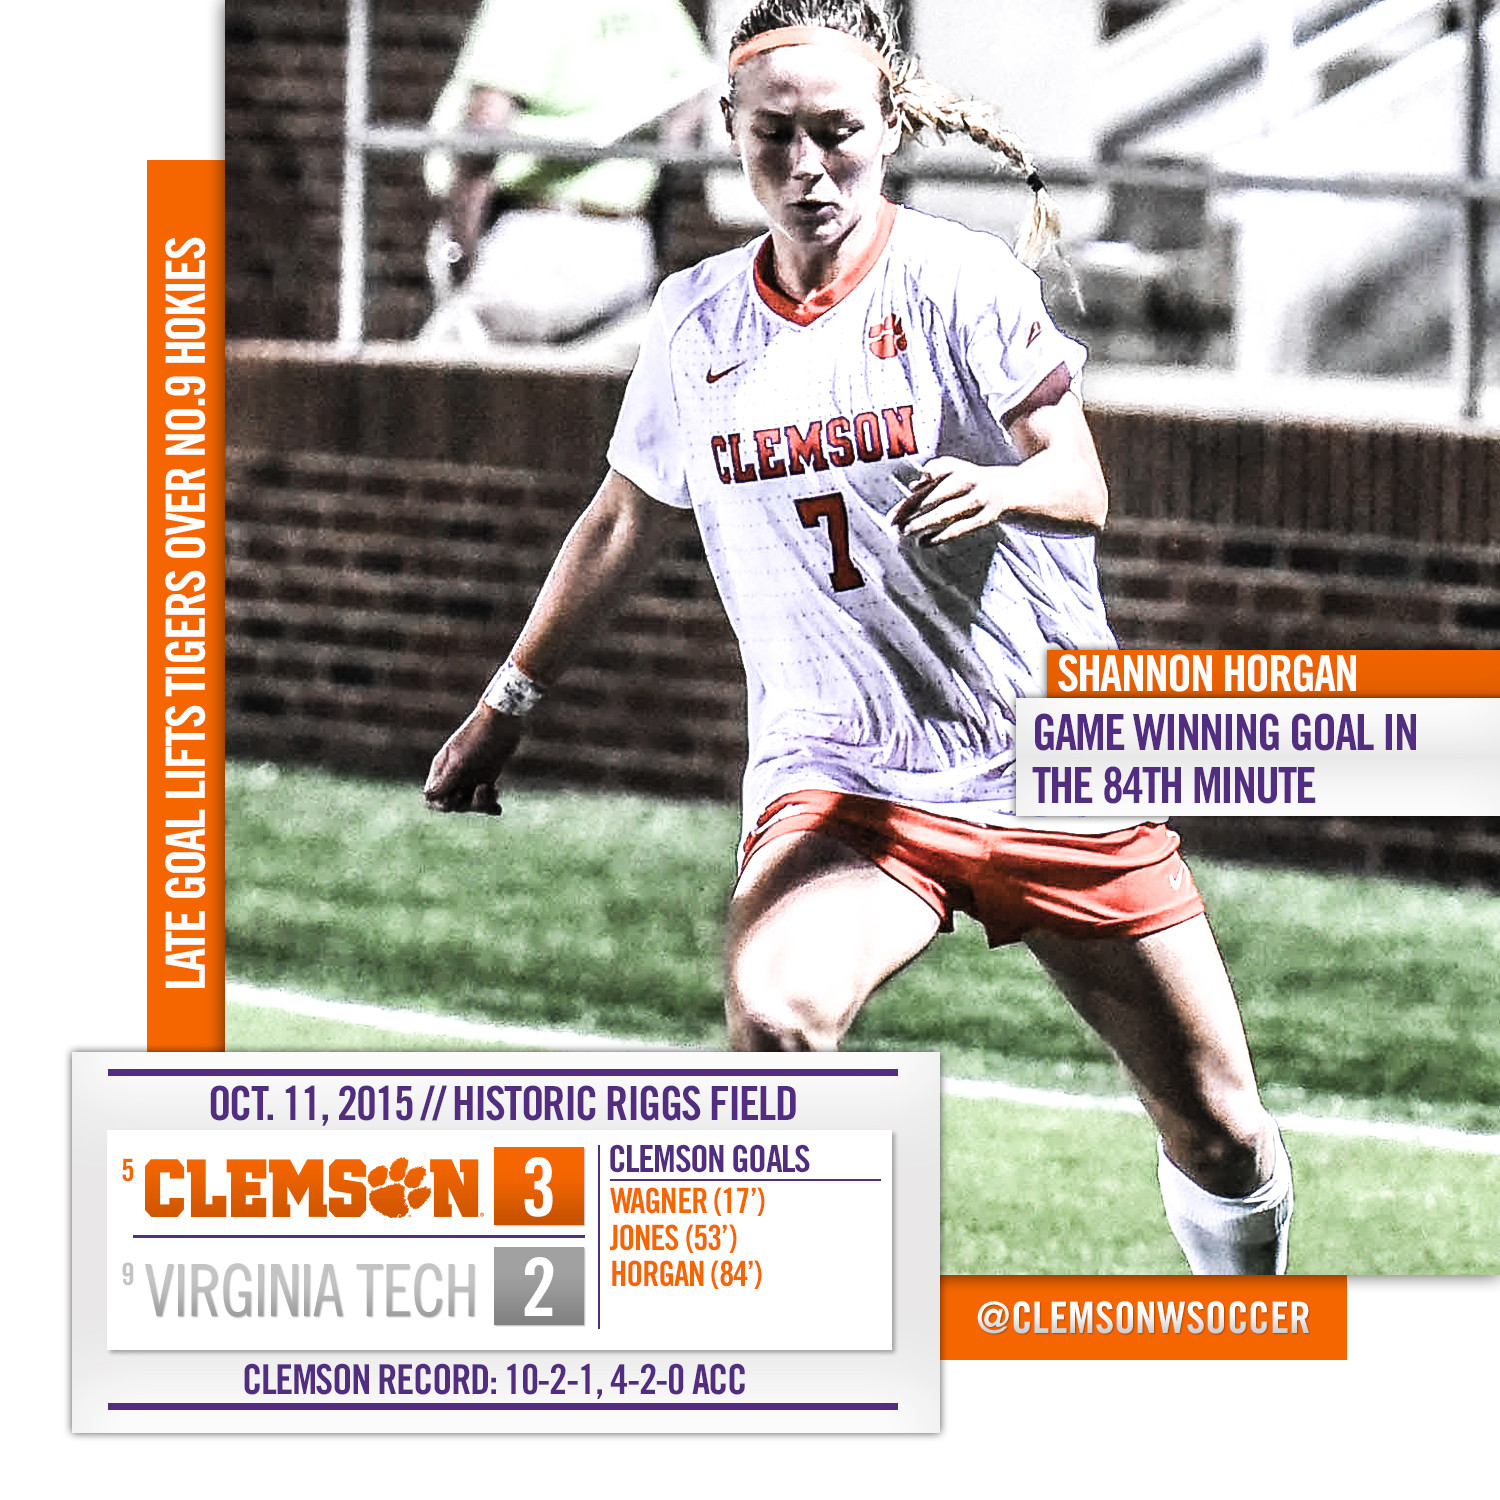 Late Goal Lifts No. 5 Tigers Over No. 9 Hokies Sunday